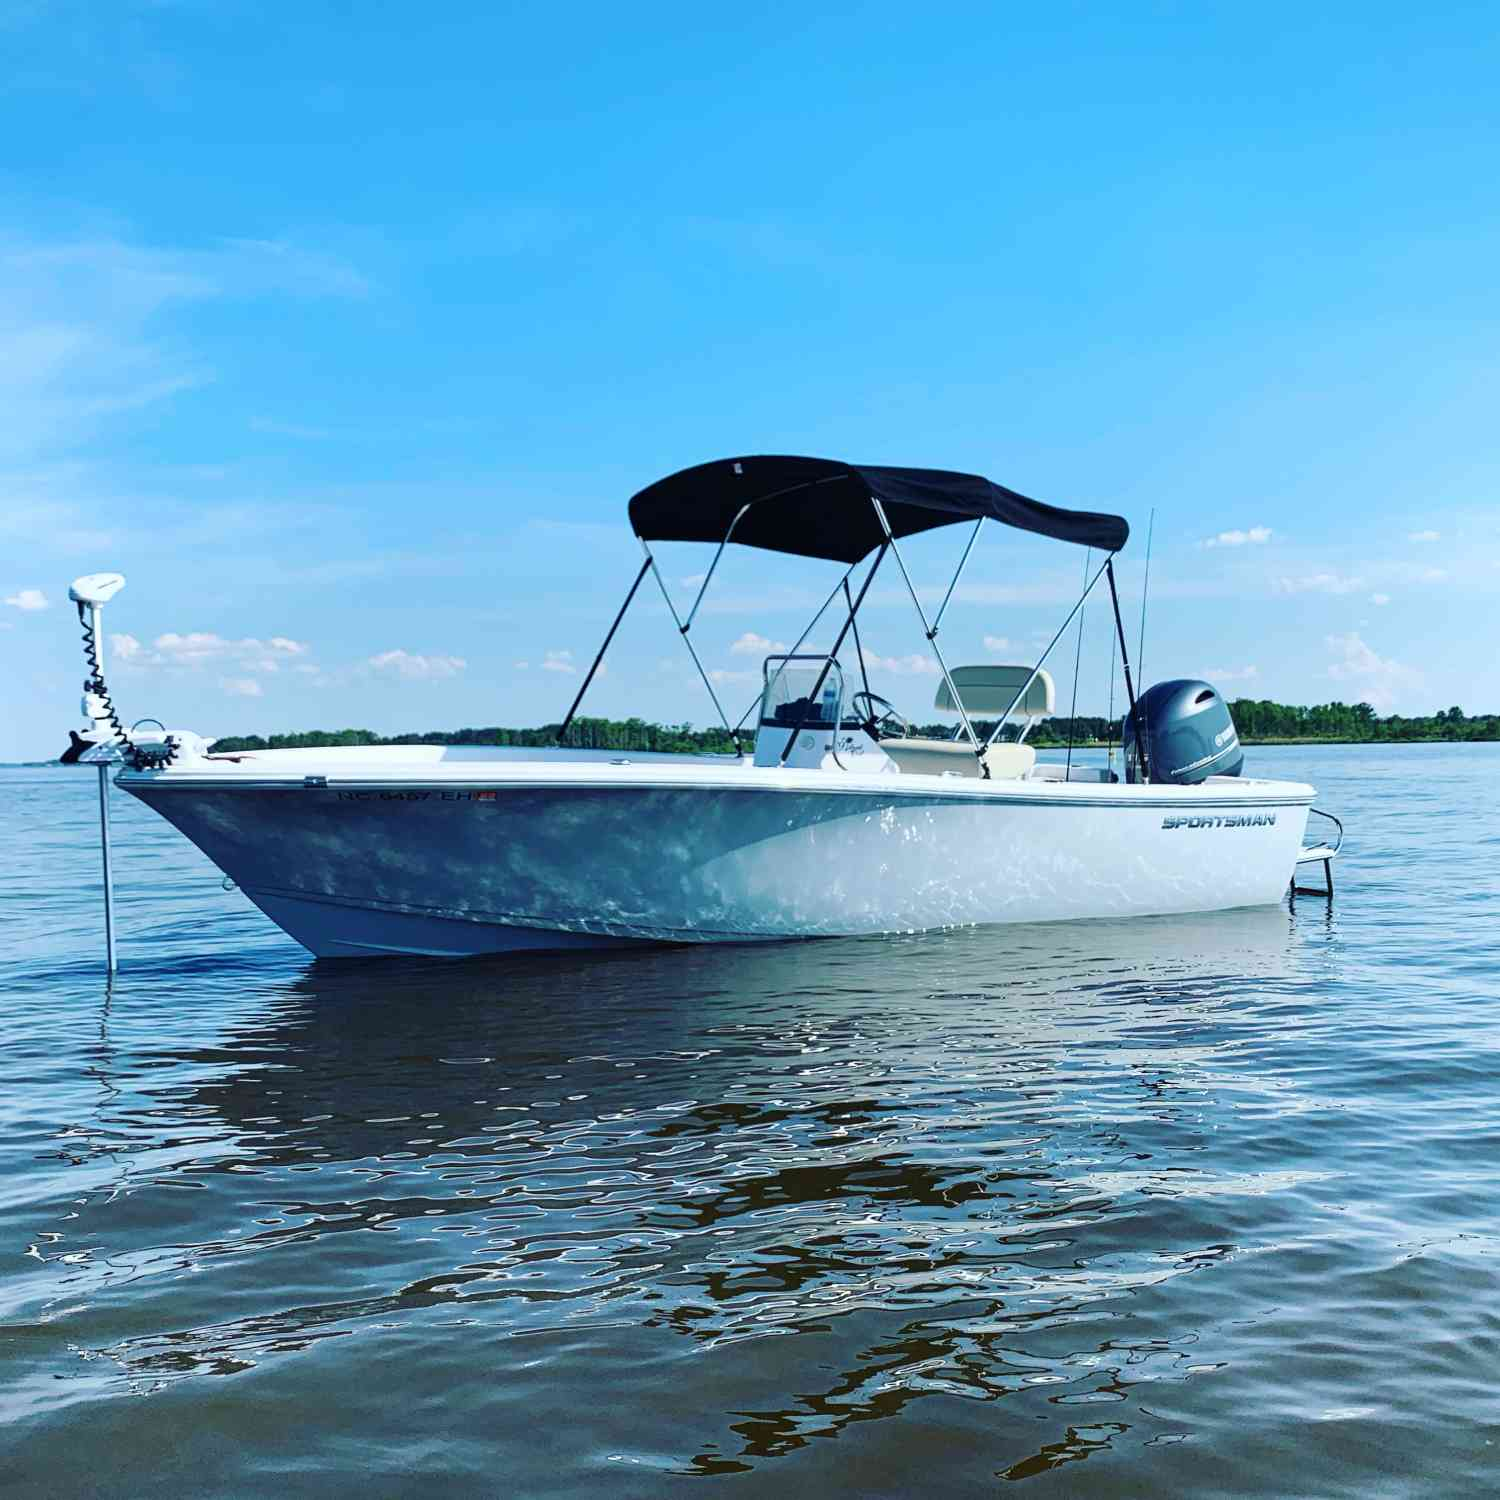 Title: Pamlico Get Away - On board their Sportsman Island Reef 19 Center Console - Location: Greenville NC. Participating in the Photo Contest #SportsmanJune2019